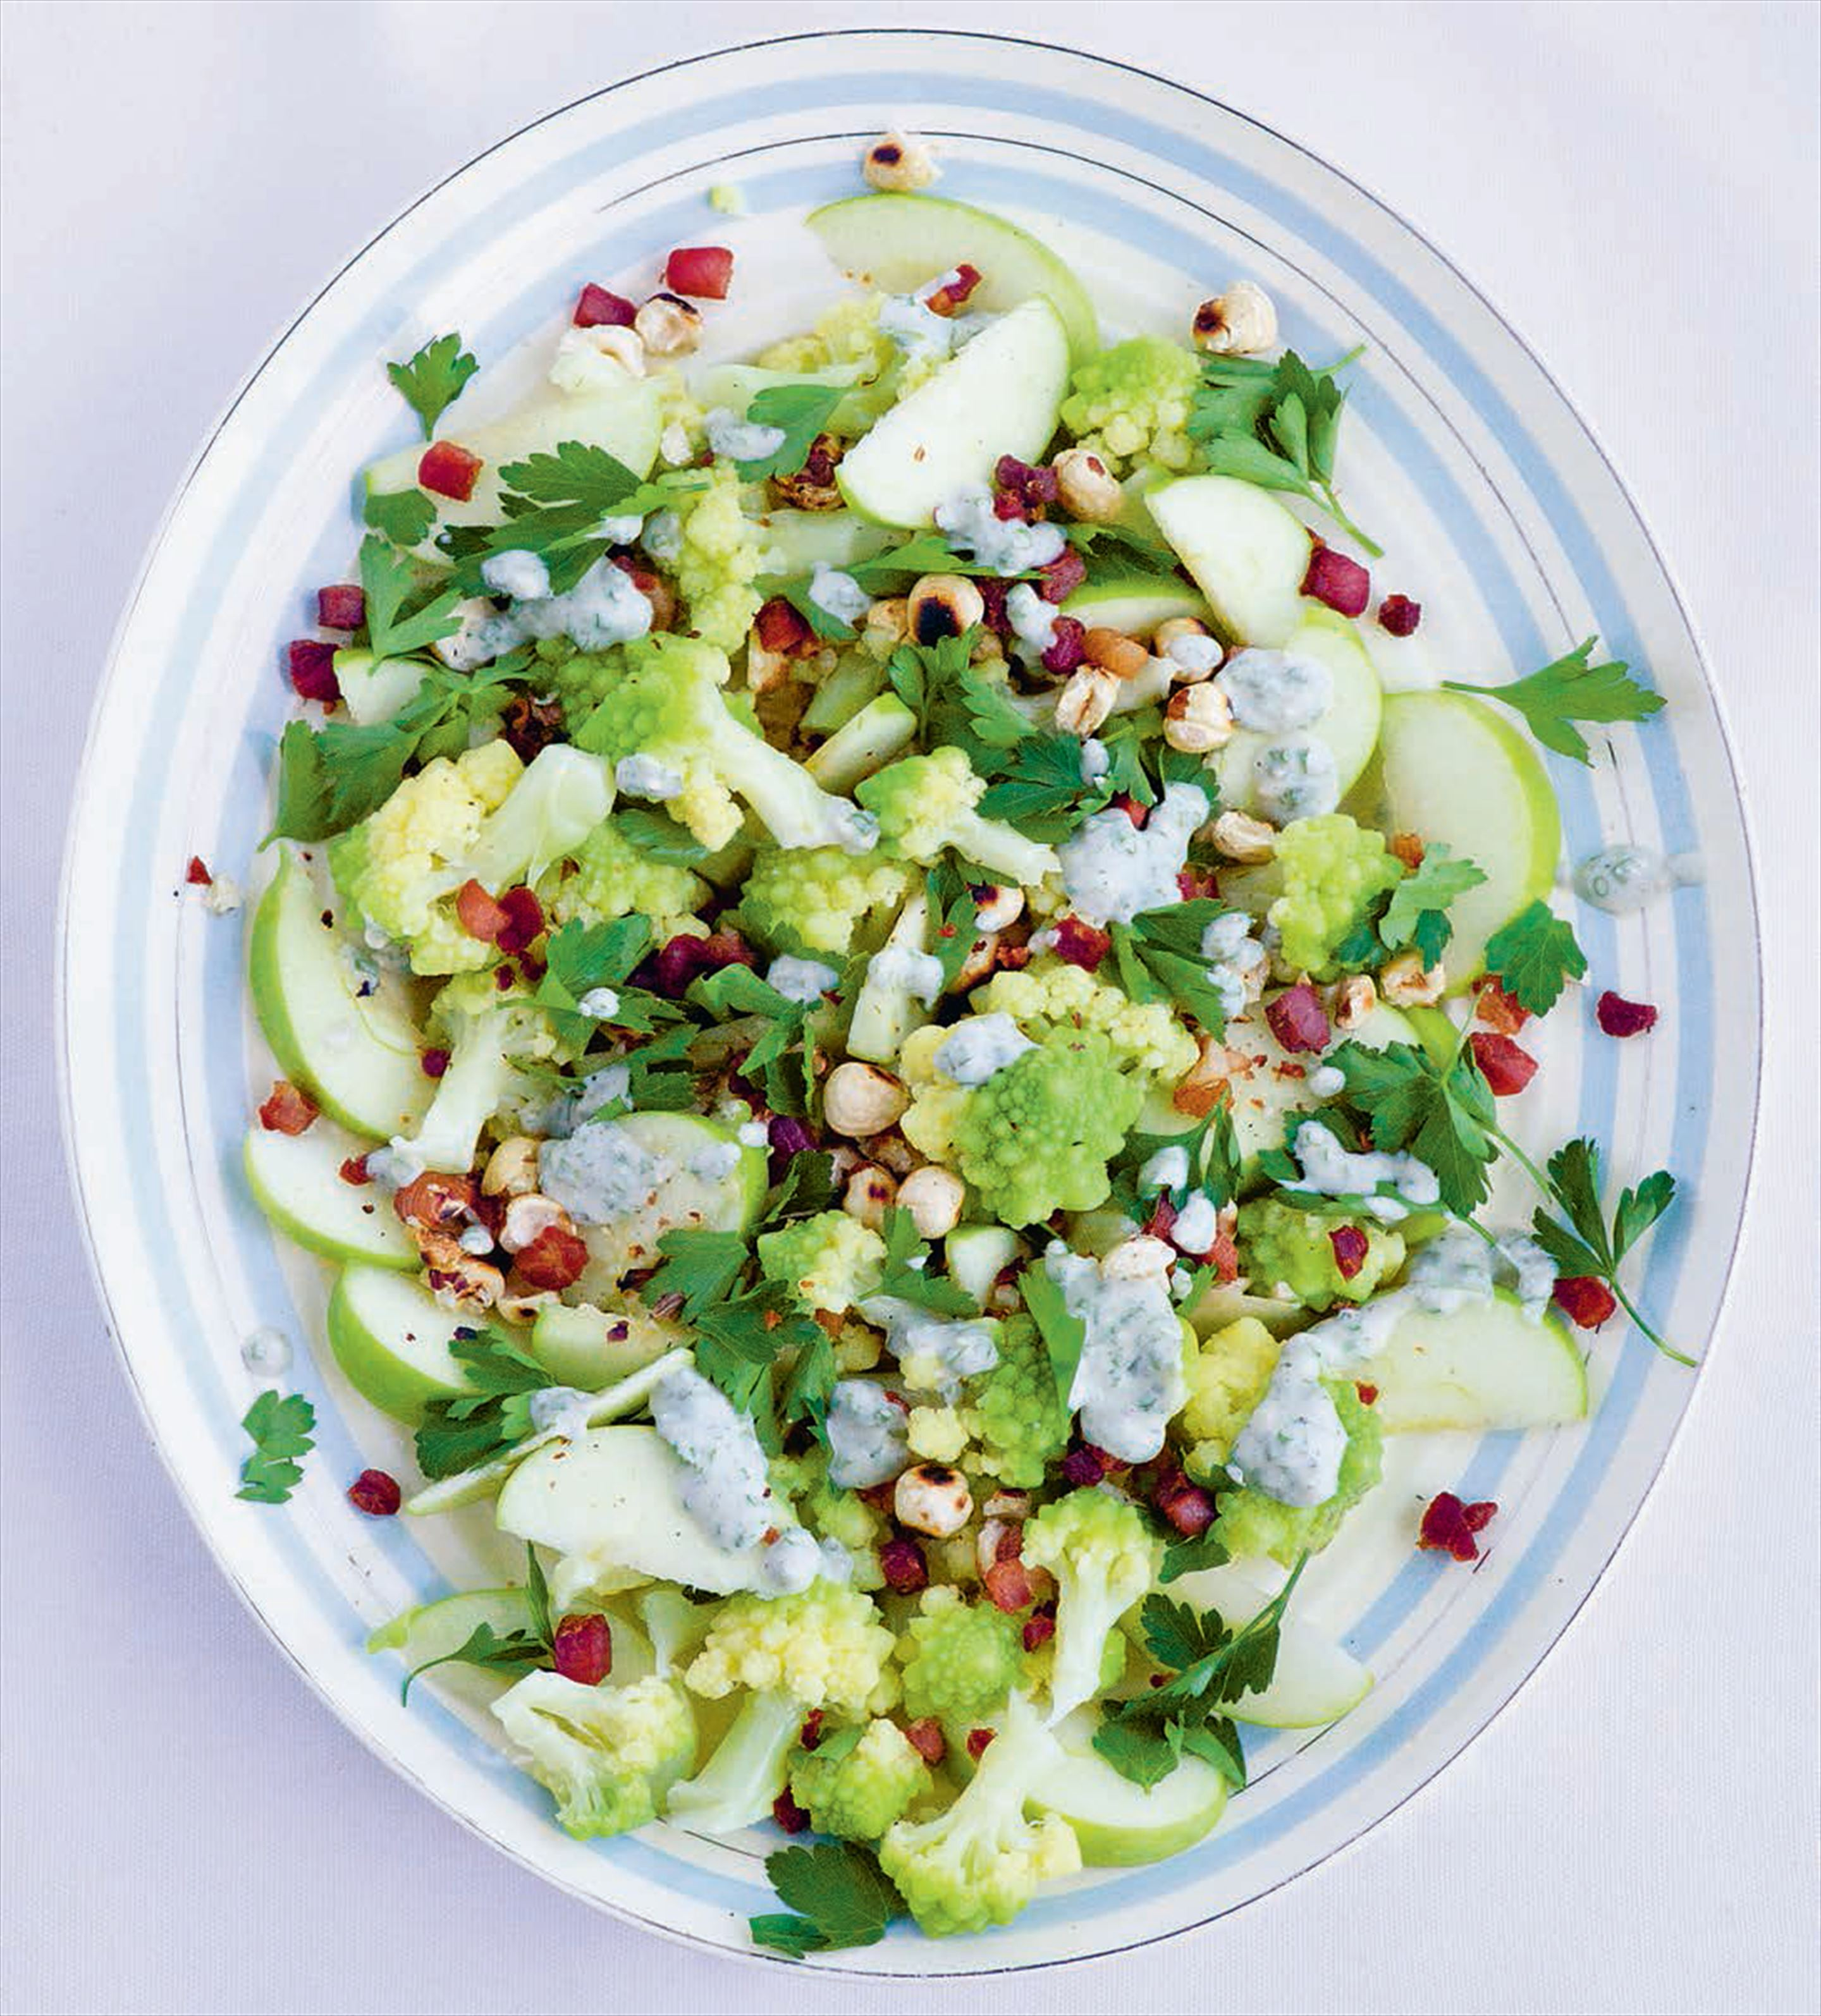 Romanesco, apple & hazelnut salad with blue cheese dressing